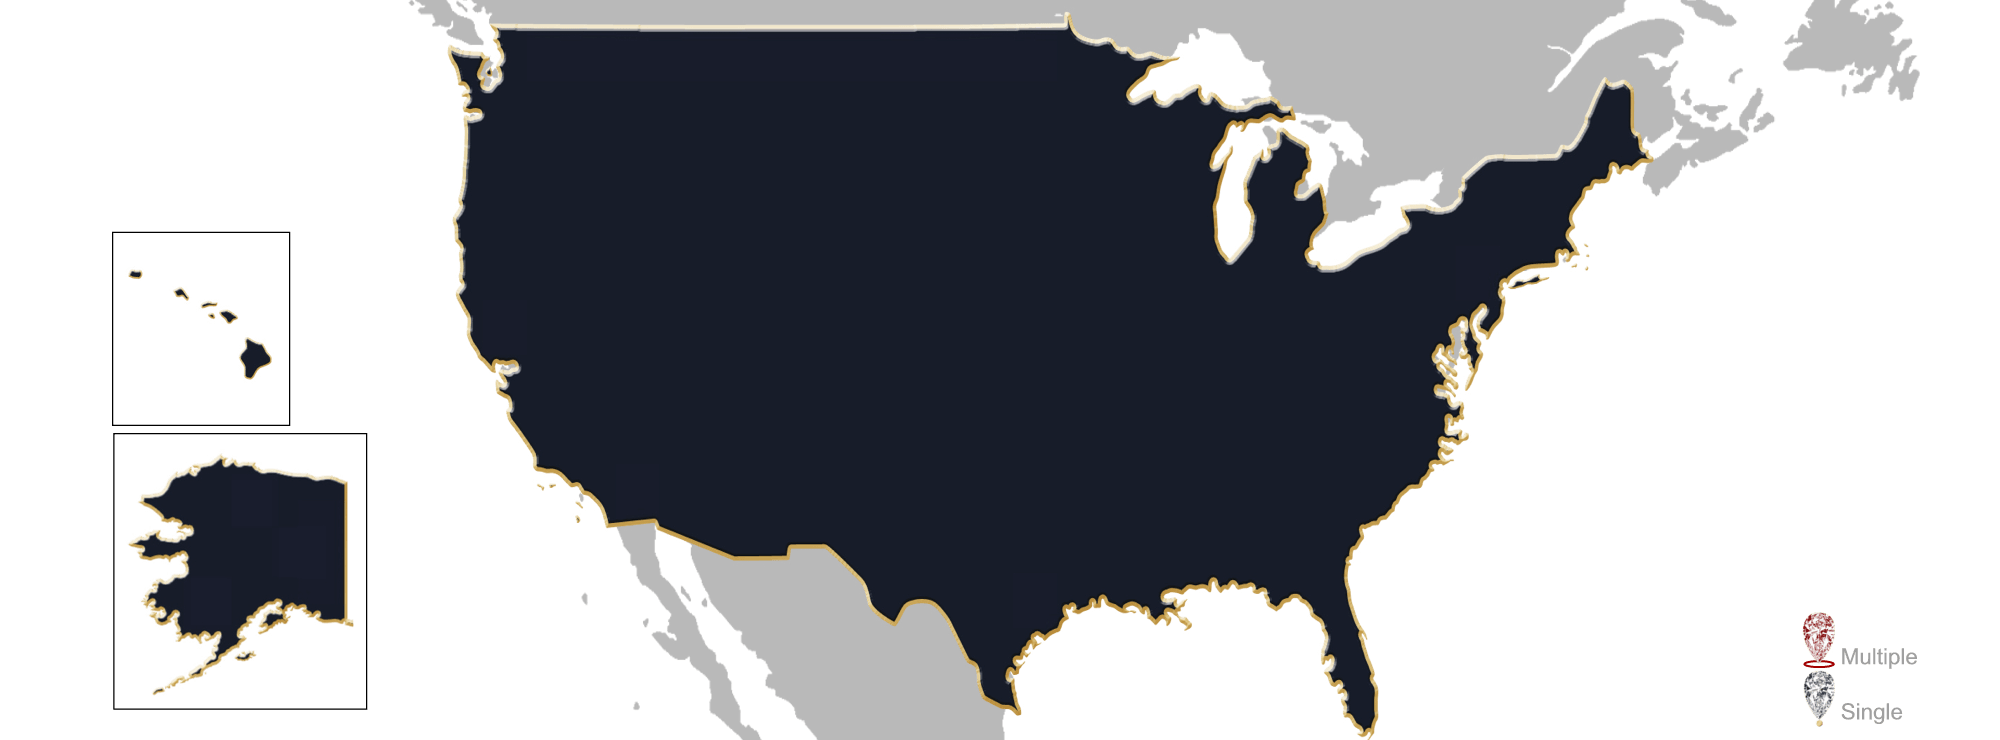 Map showing location of jewelry appraisers in the US